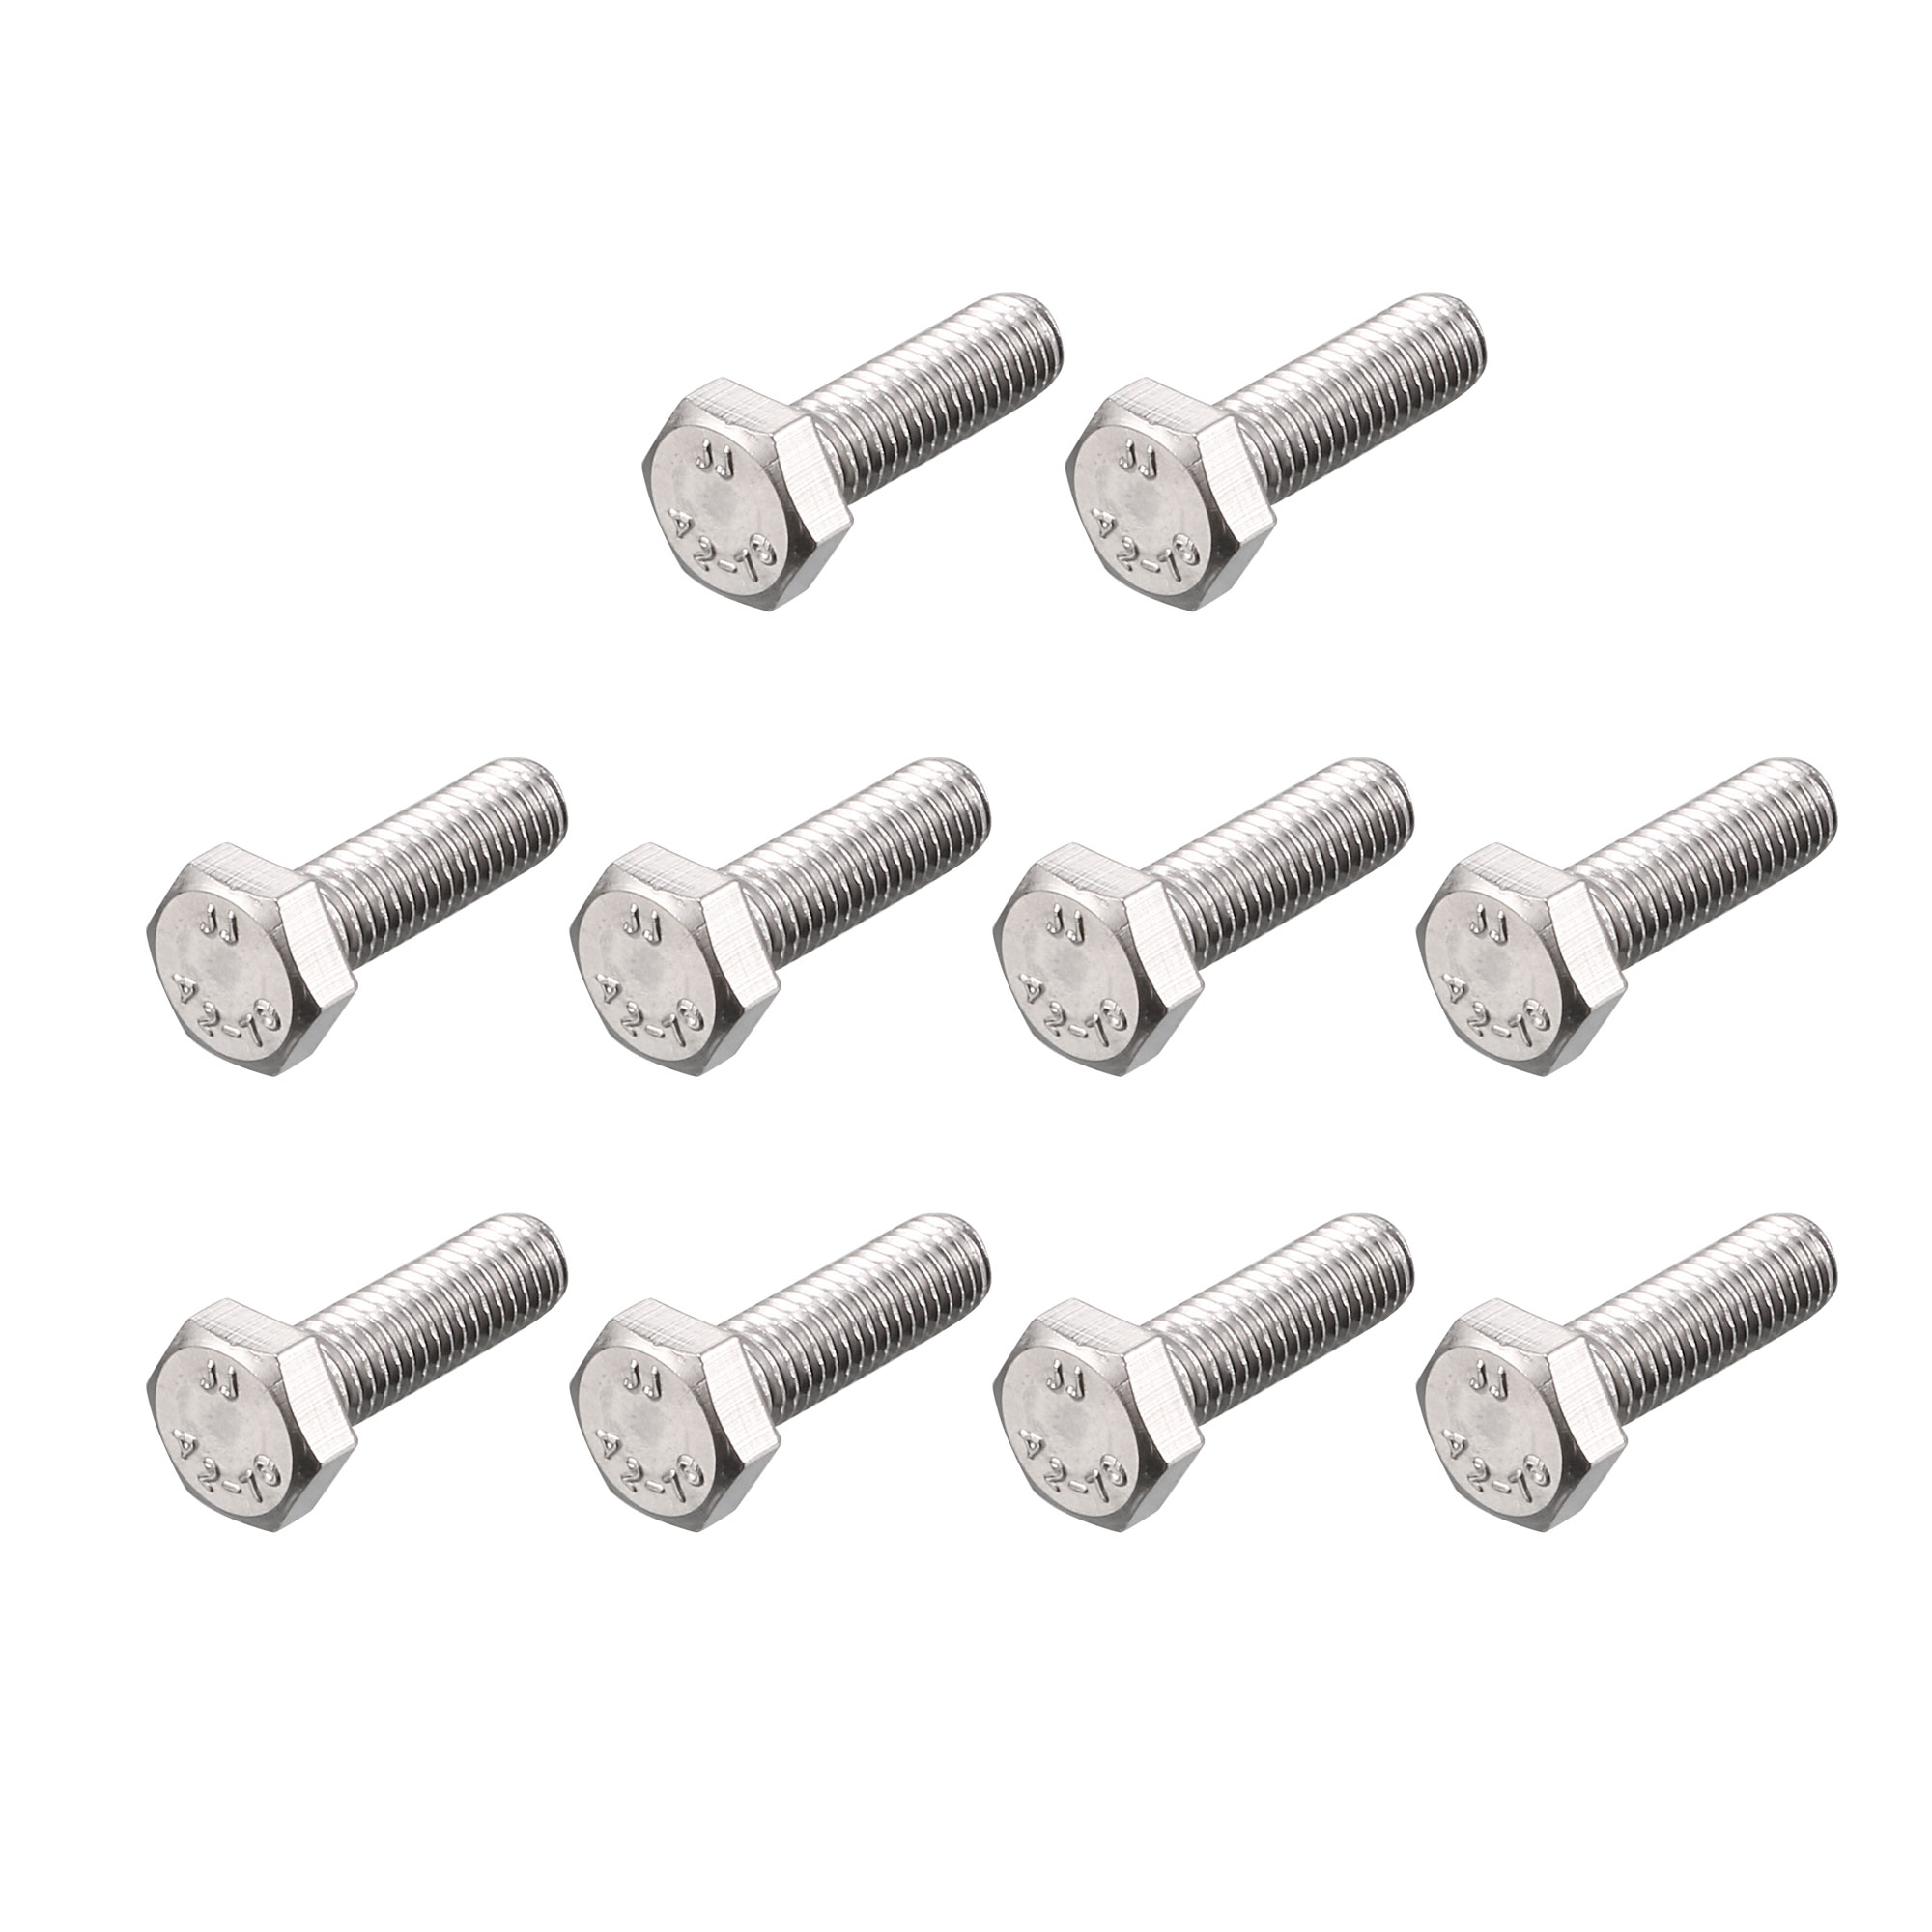 M6 x 20mm Metric 304 Stainless Steel Fully Threaded Hex Head Screw Bolt 20 Pcs